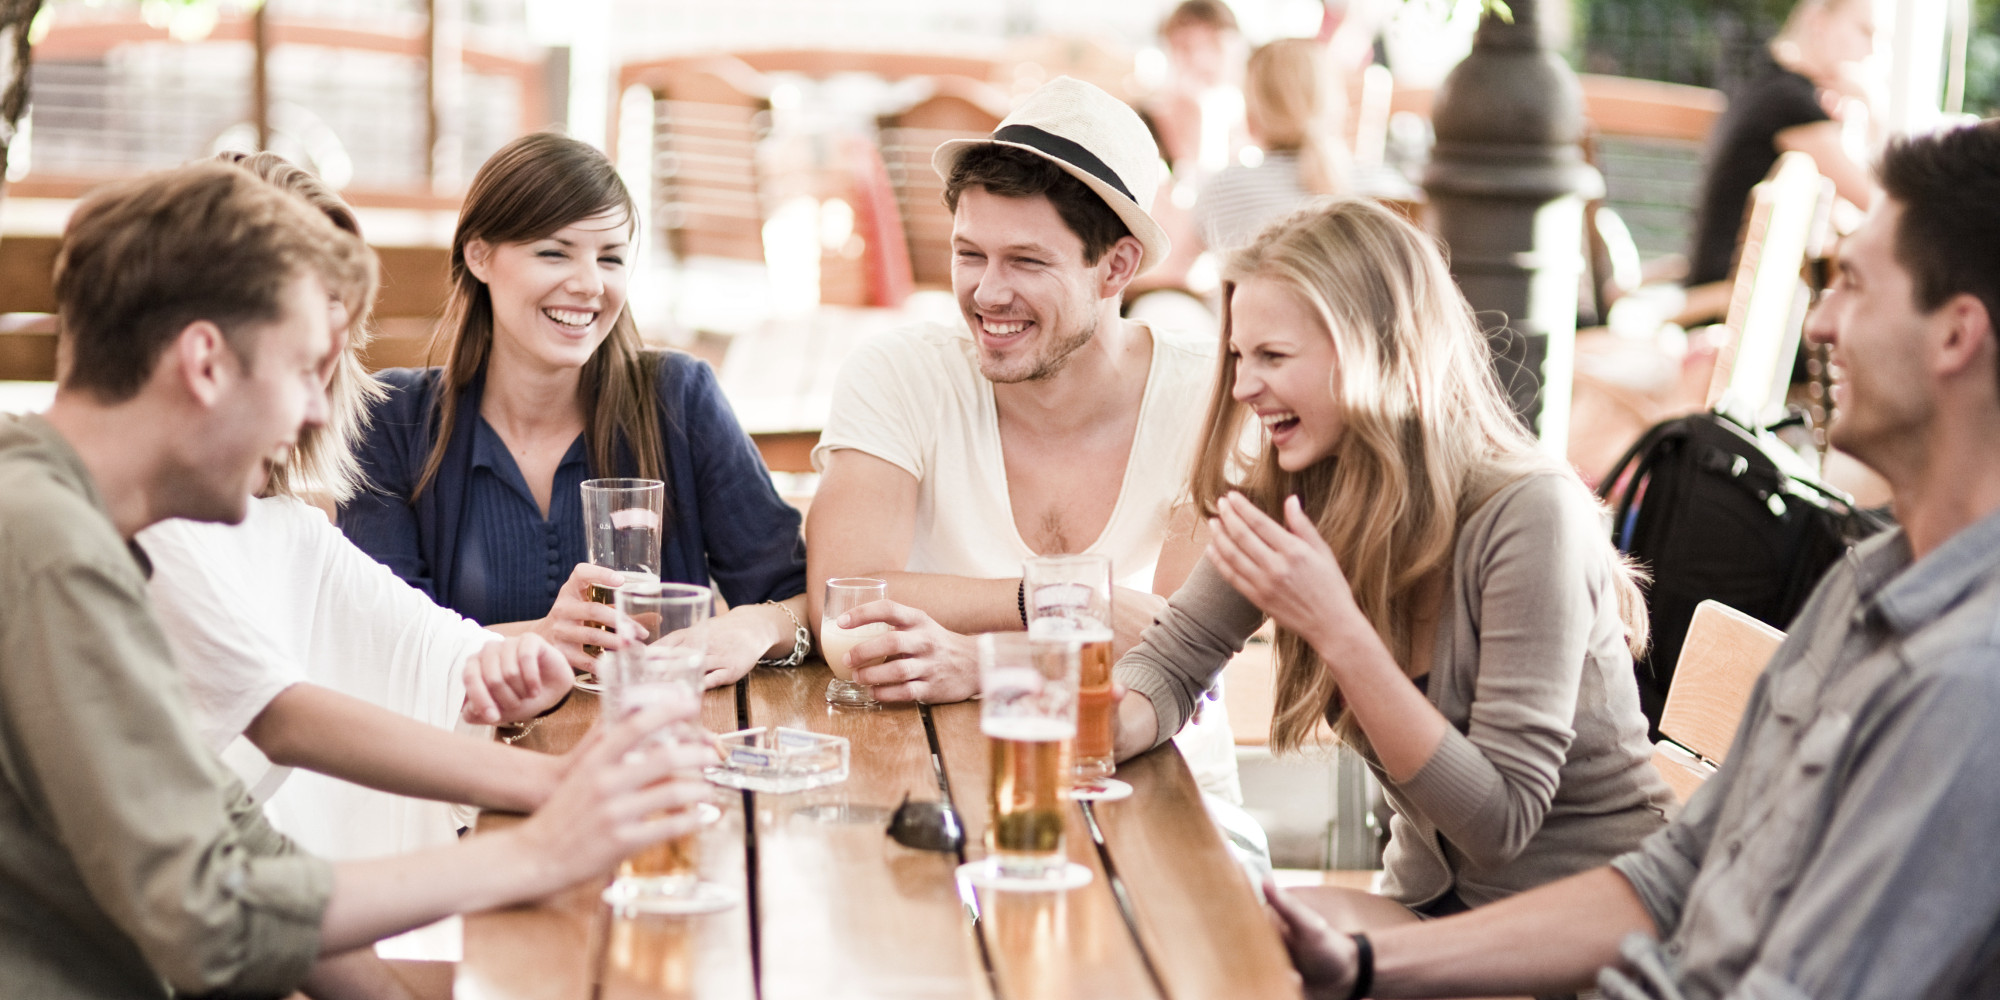 11 Secrets to Choosing the Right Friends | The Huffington Post